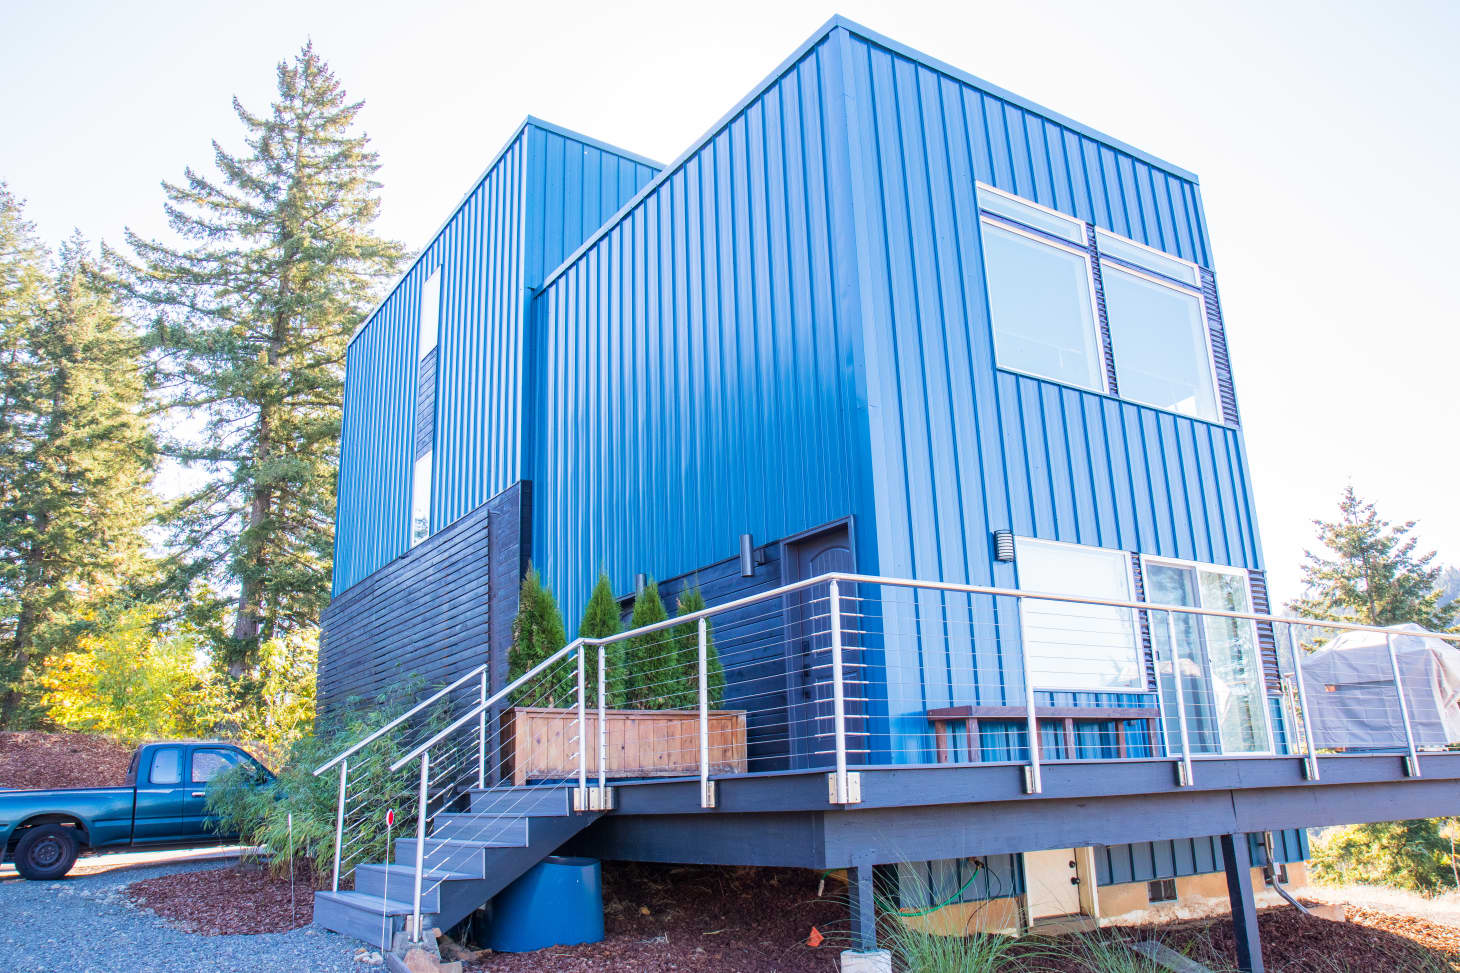 The Coolest Shipping Container Homes You Can Rent